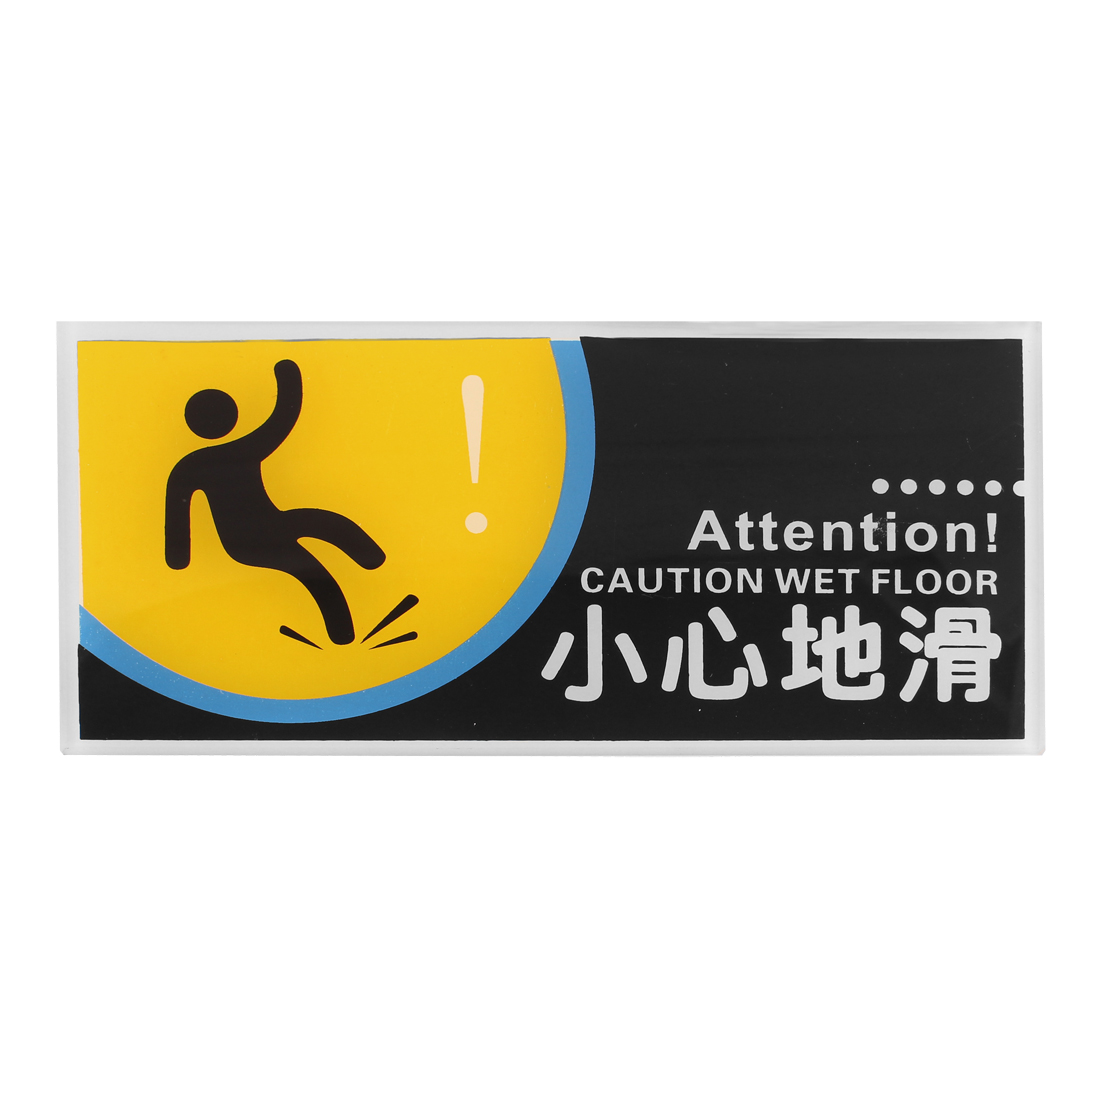 Plastic Rectangle Sketch Map Printed Caution Wet Floor Attention Warning Sign Sticker Decal